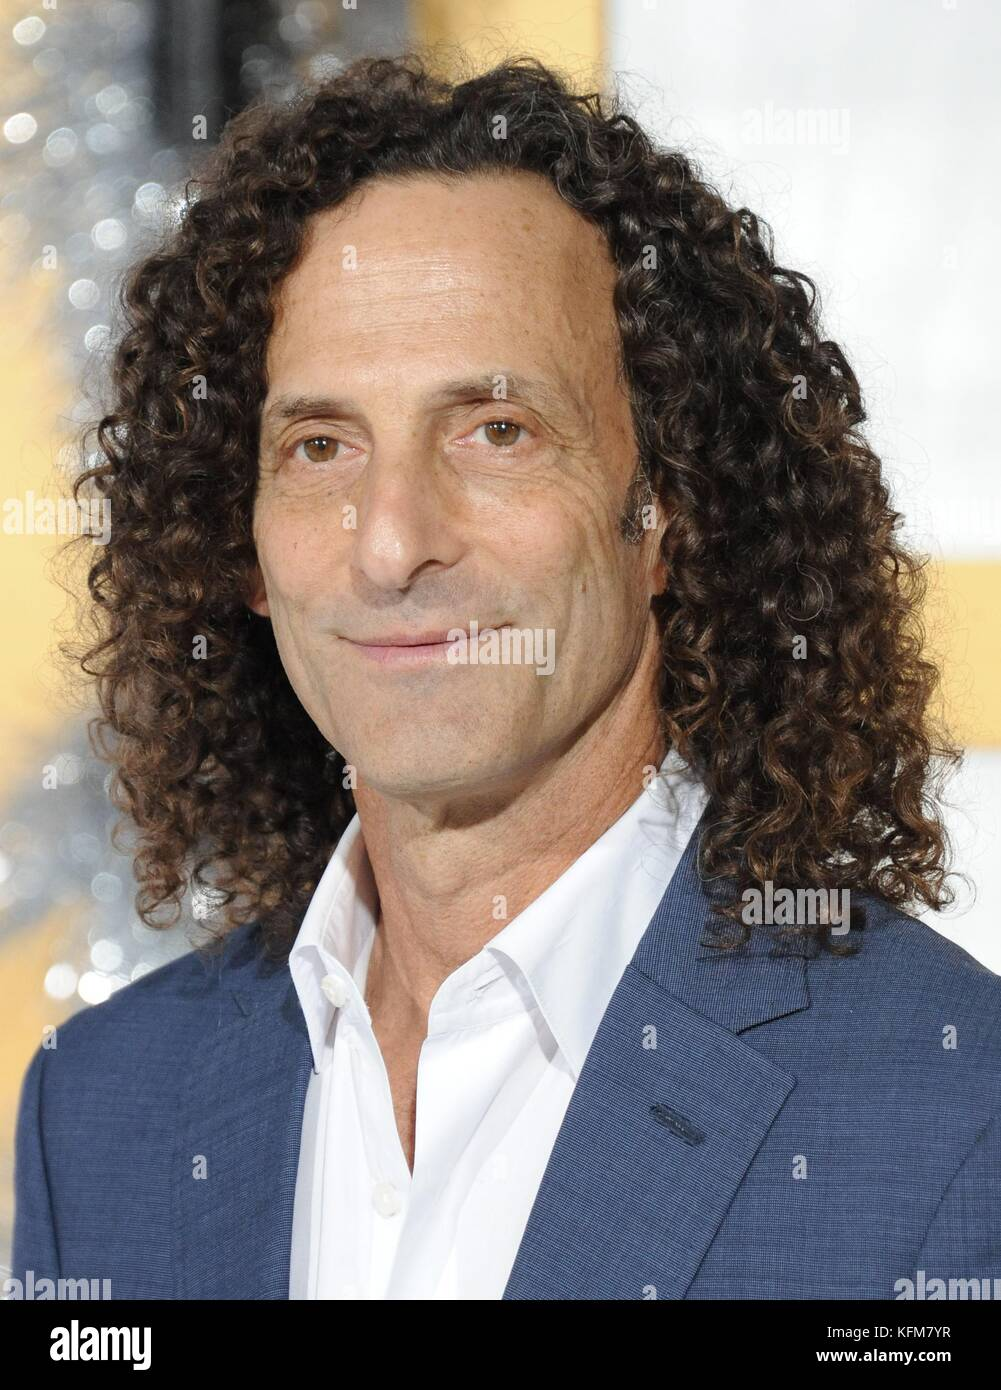 Kenny G Christmas.Los Angeles Ca Usa 30th Oct 2017 Kenny G At Arrivals